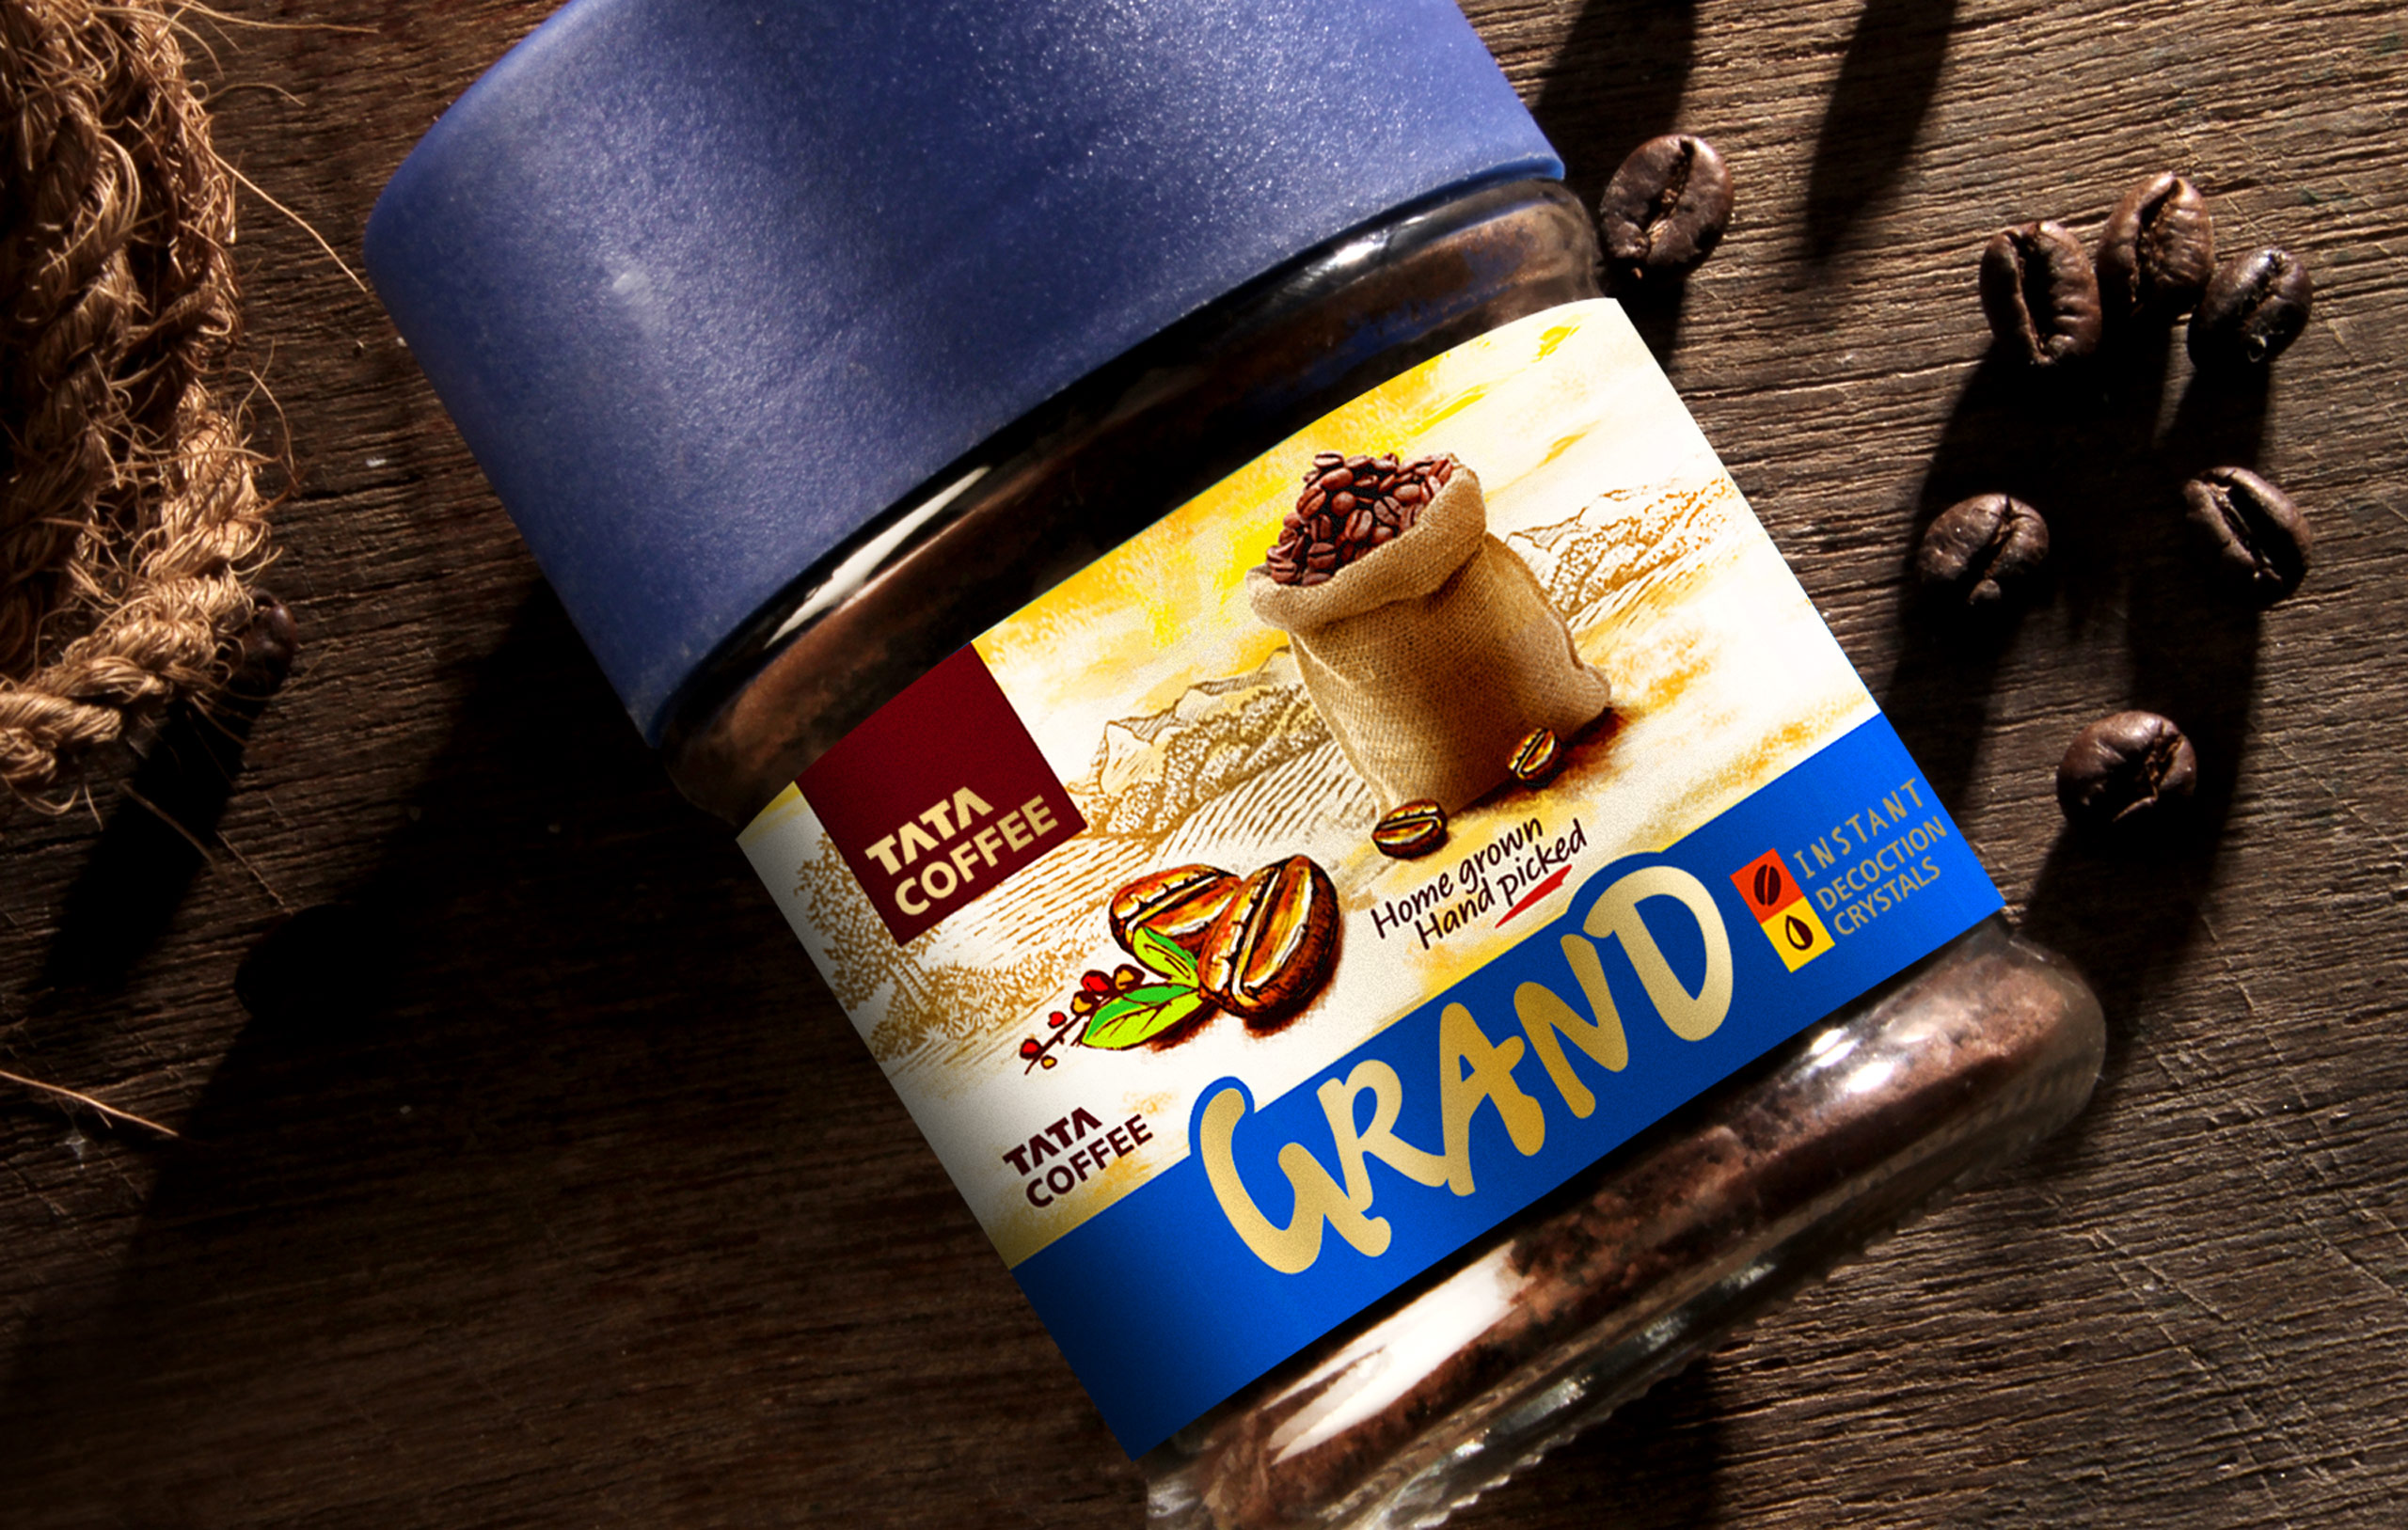 TATA Coffee Grand Instant decoction crystals package designed by Icarus Design Bangalore